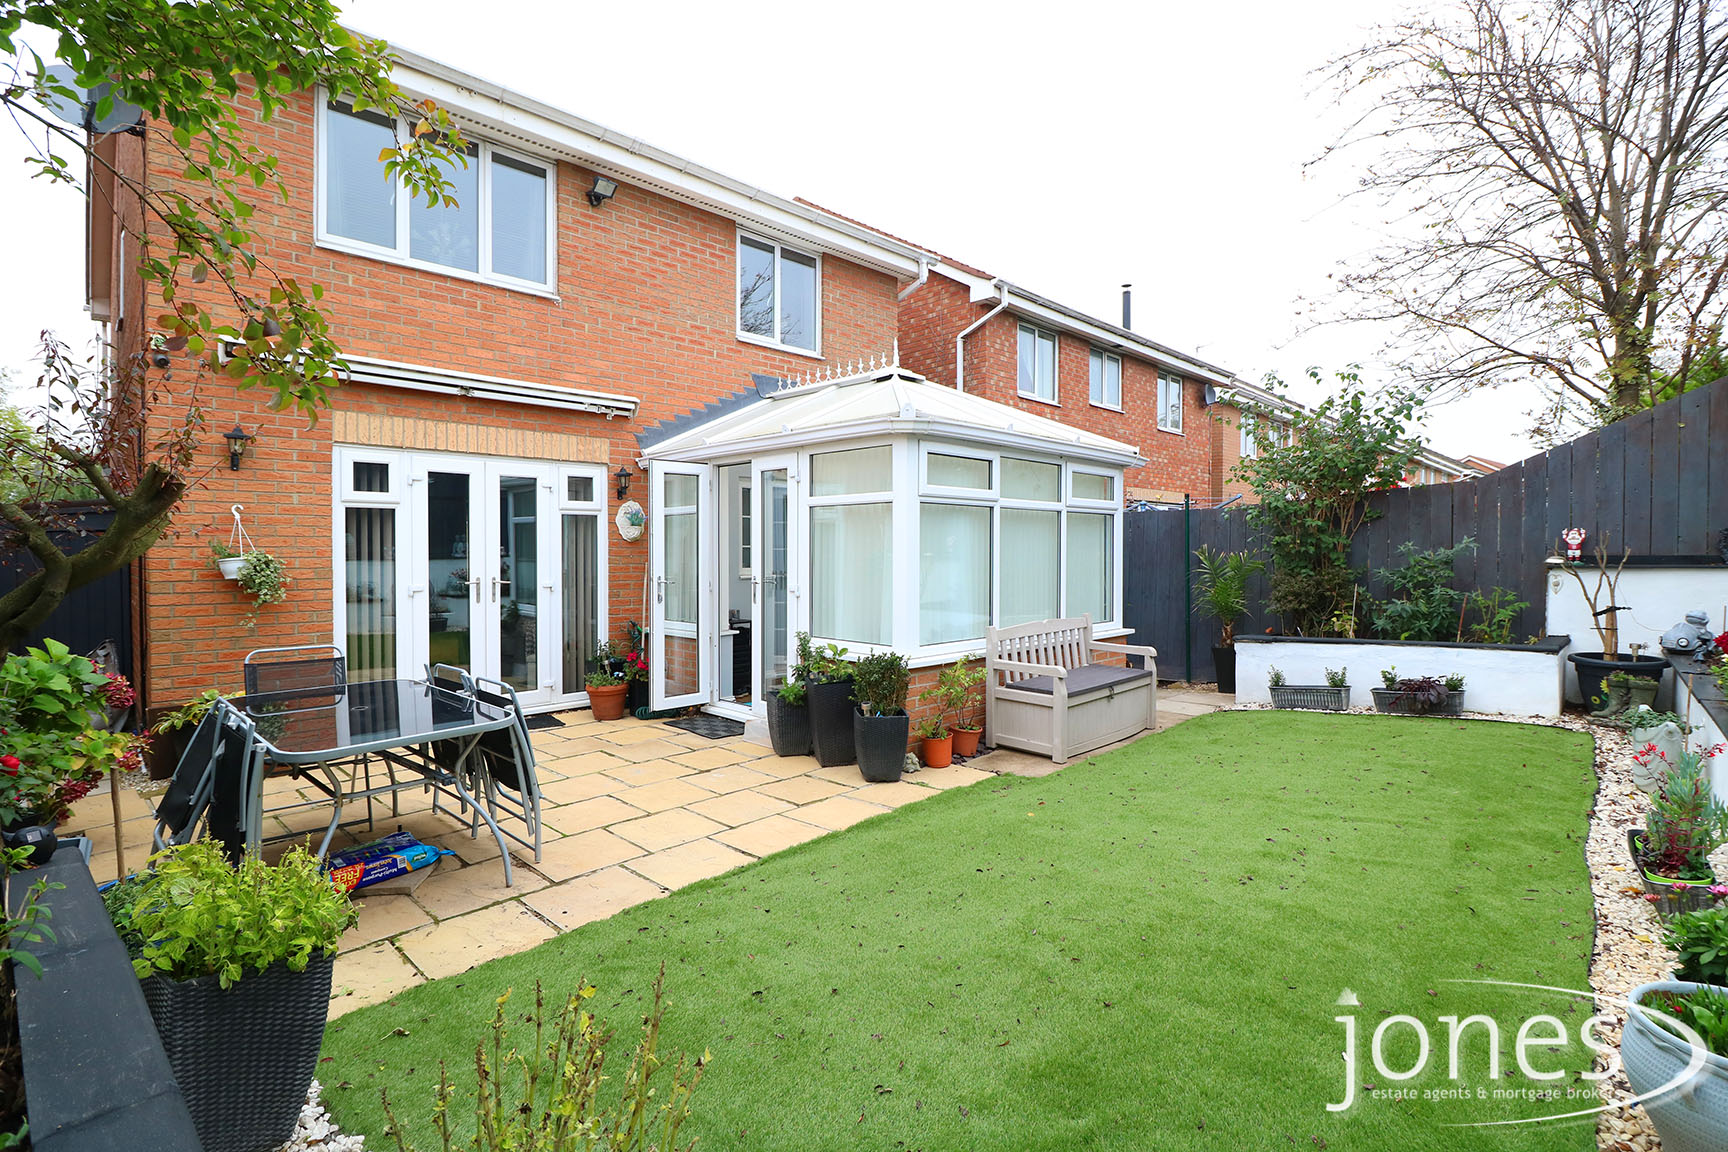 Home for Sale Let - Photo 13 West End Way, Stockton on Tees, TS18 3UA